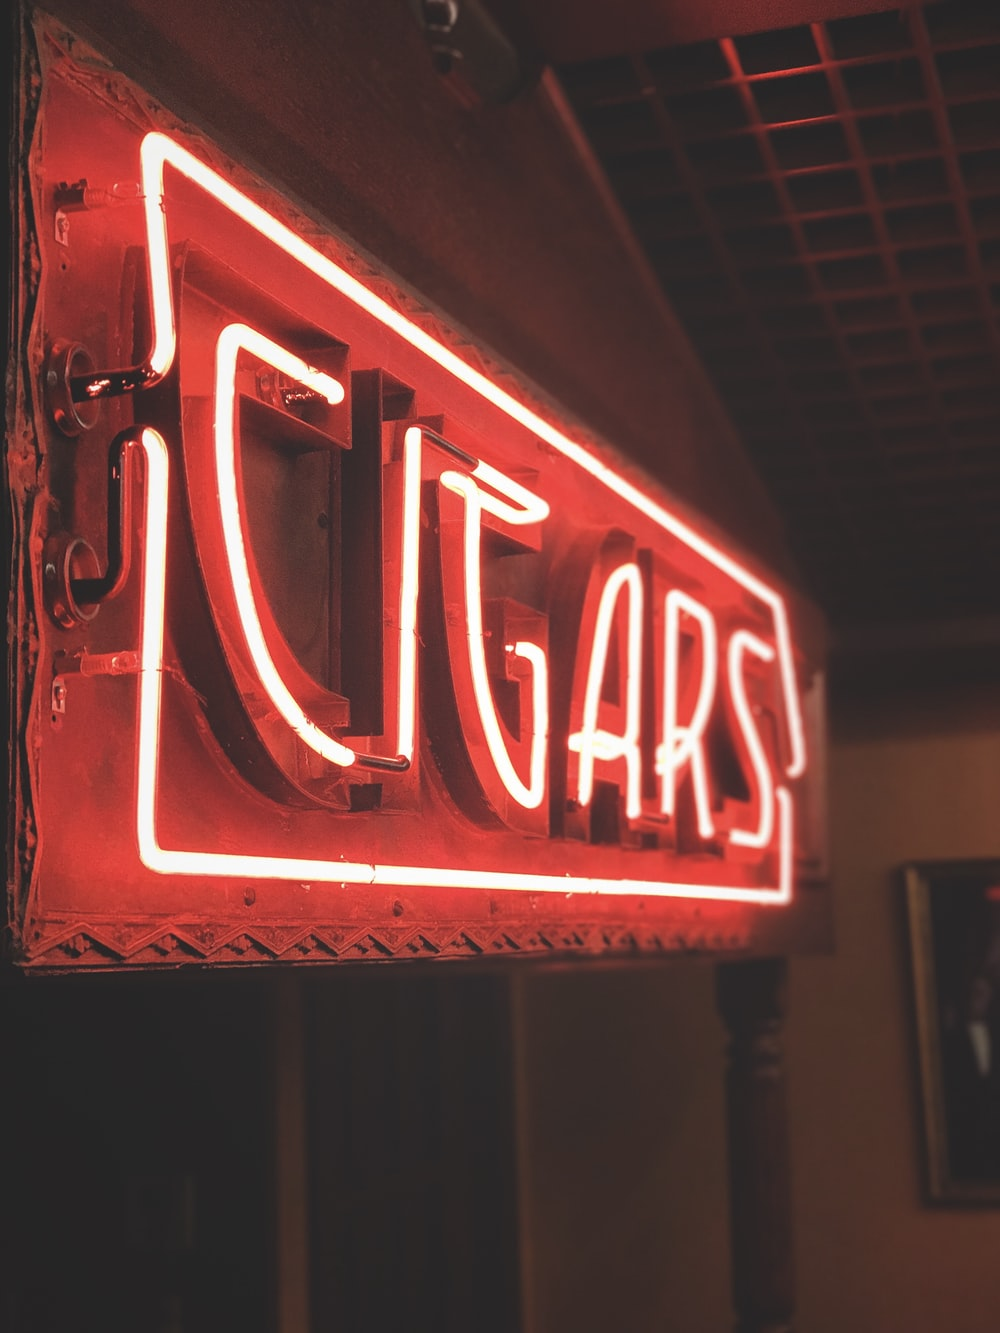 red Cigars neon signage hanging decor